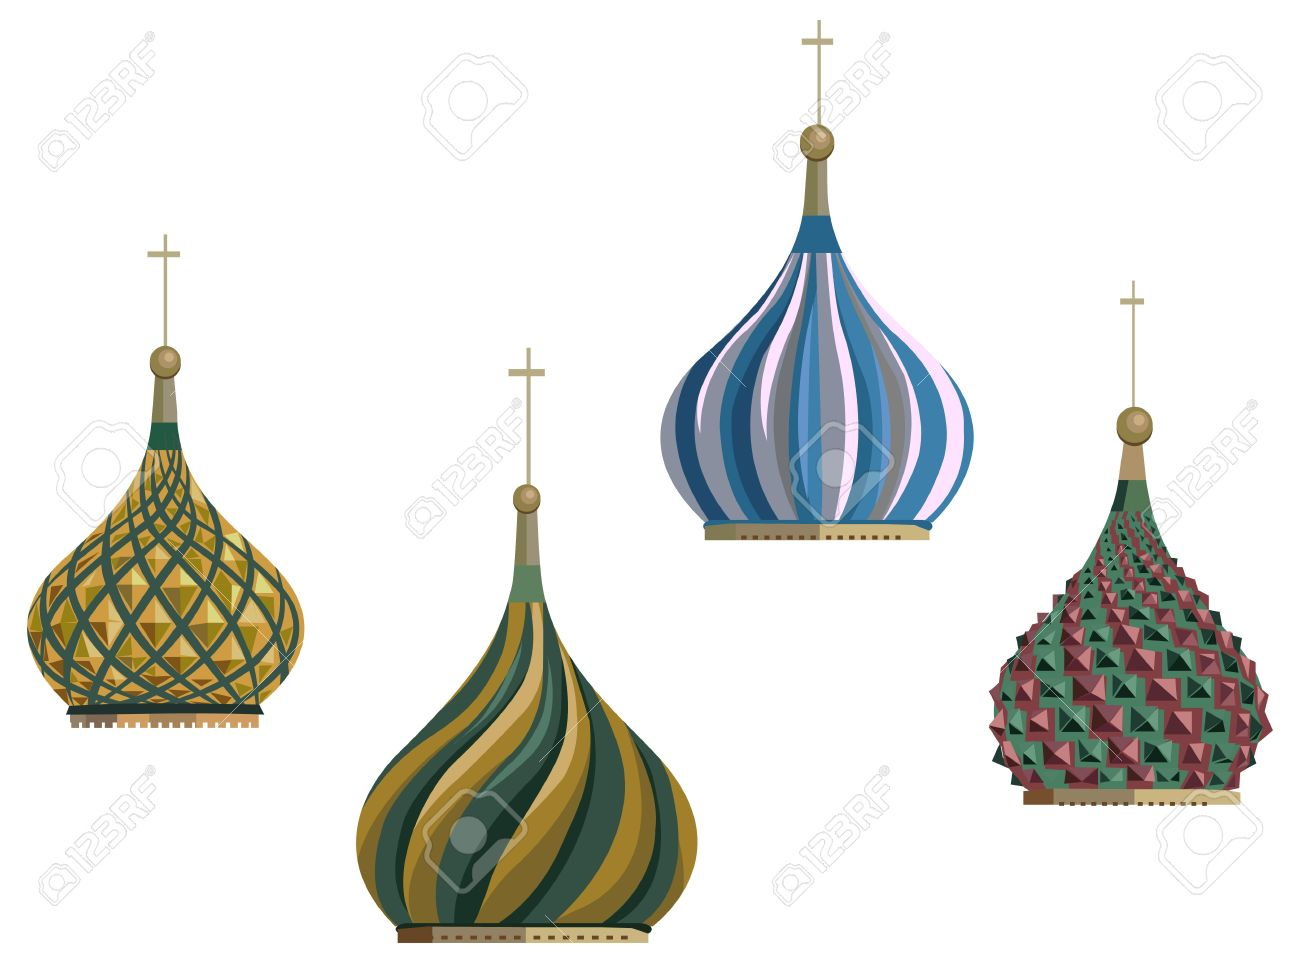 Illustration Of Kremlin Domes, Isolated On White Background.